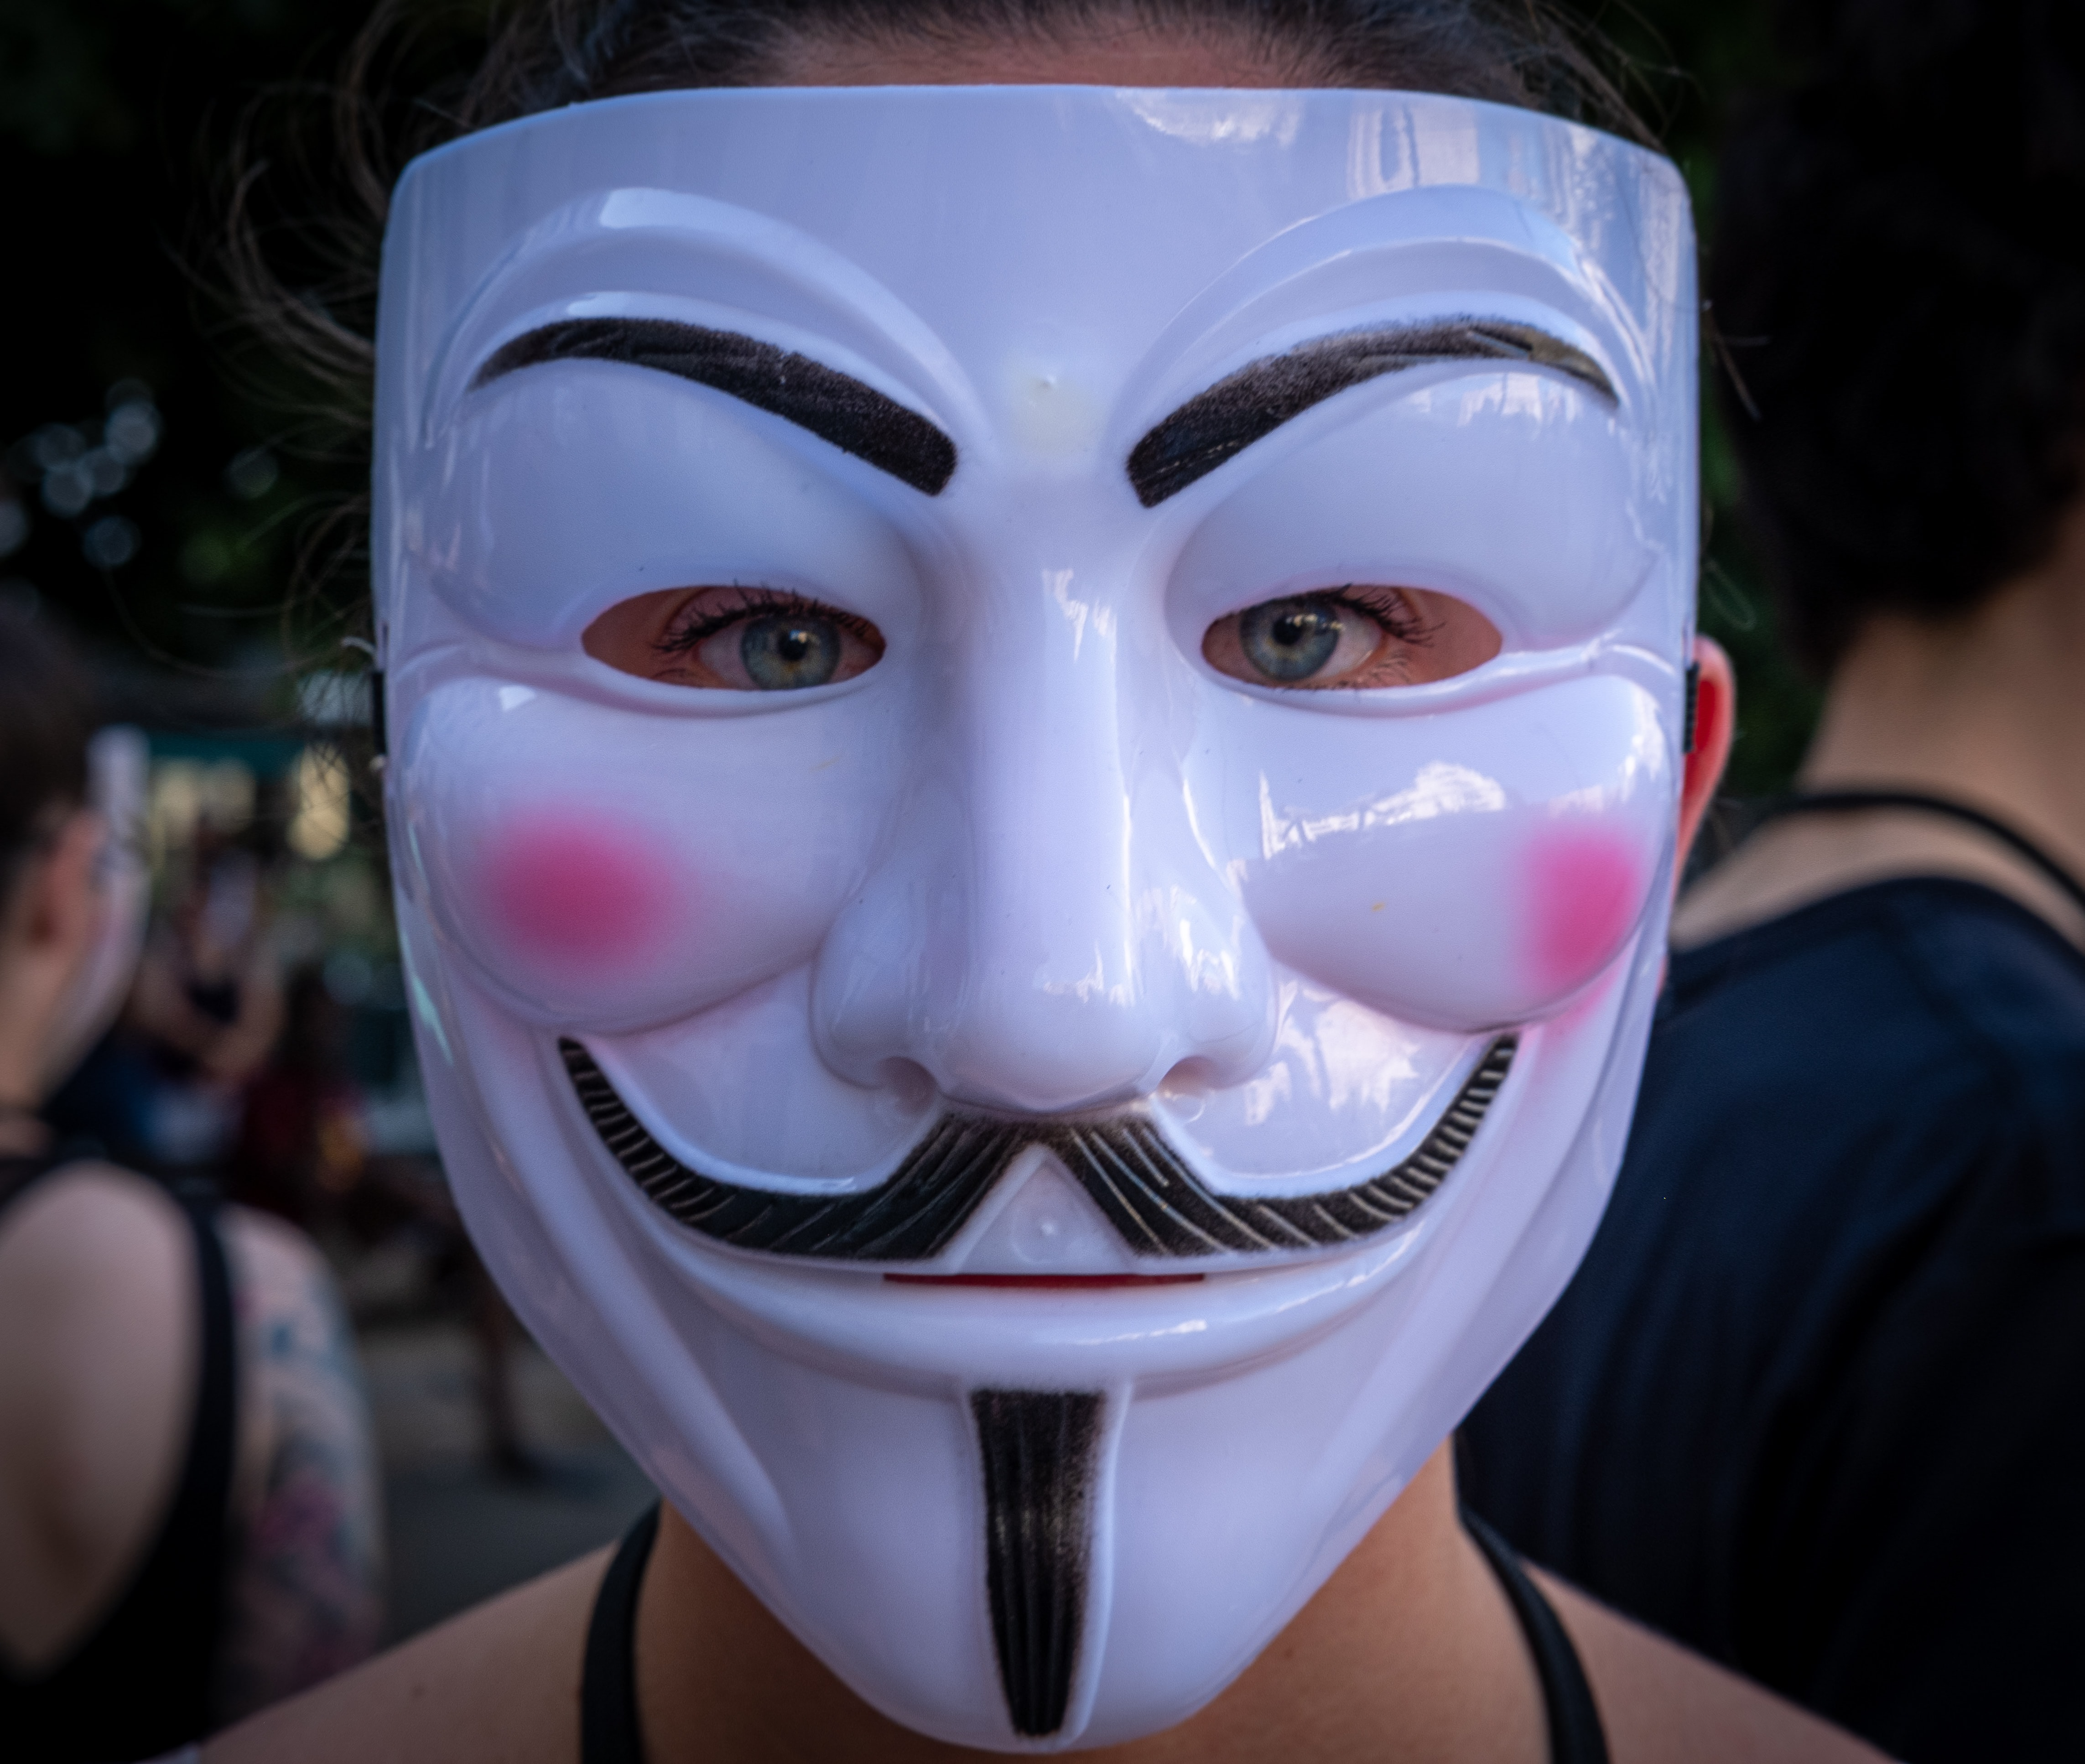 Person wearing Guy Fawkes mask; image by Guillermo Latorre, via Unsplash.com.